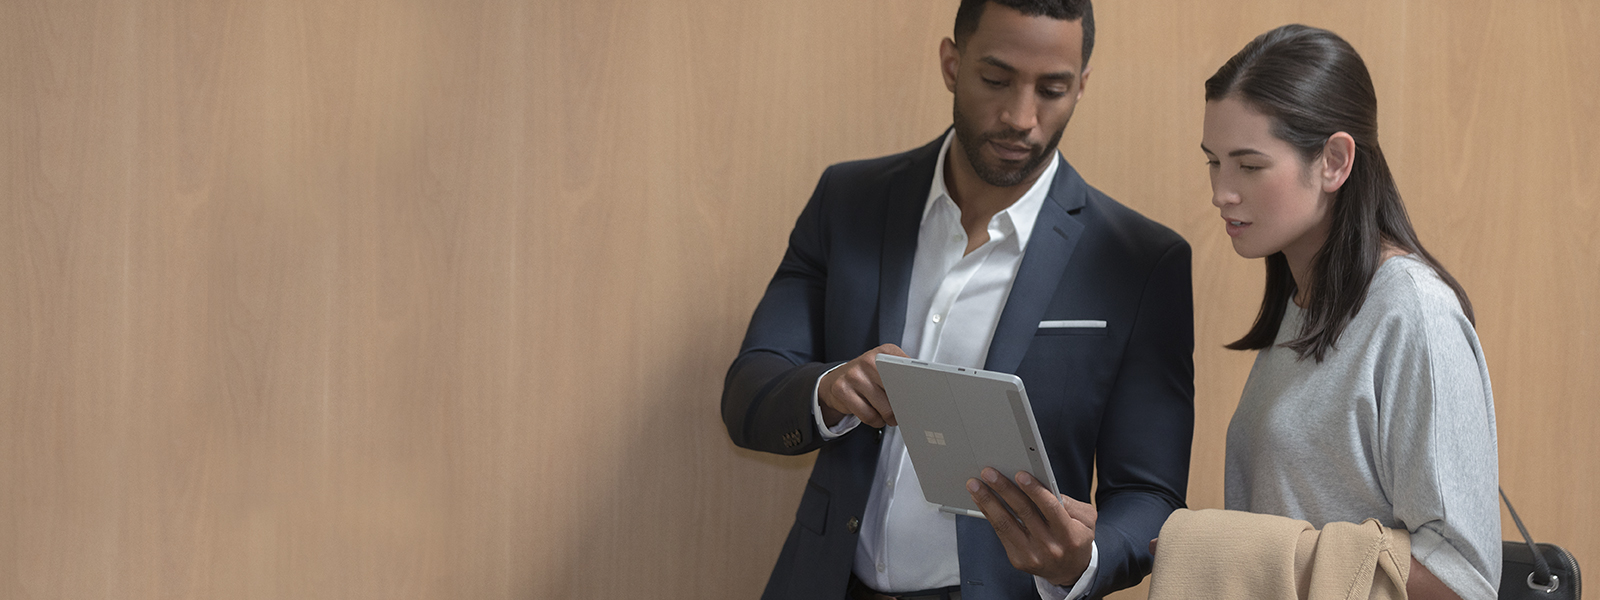 Business man and Business woman looking at a Surface Go in hallway